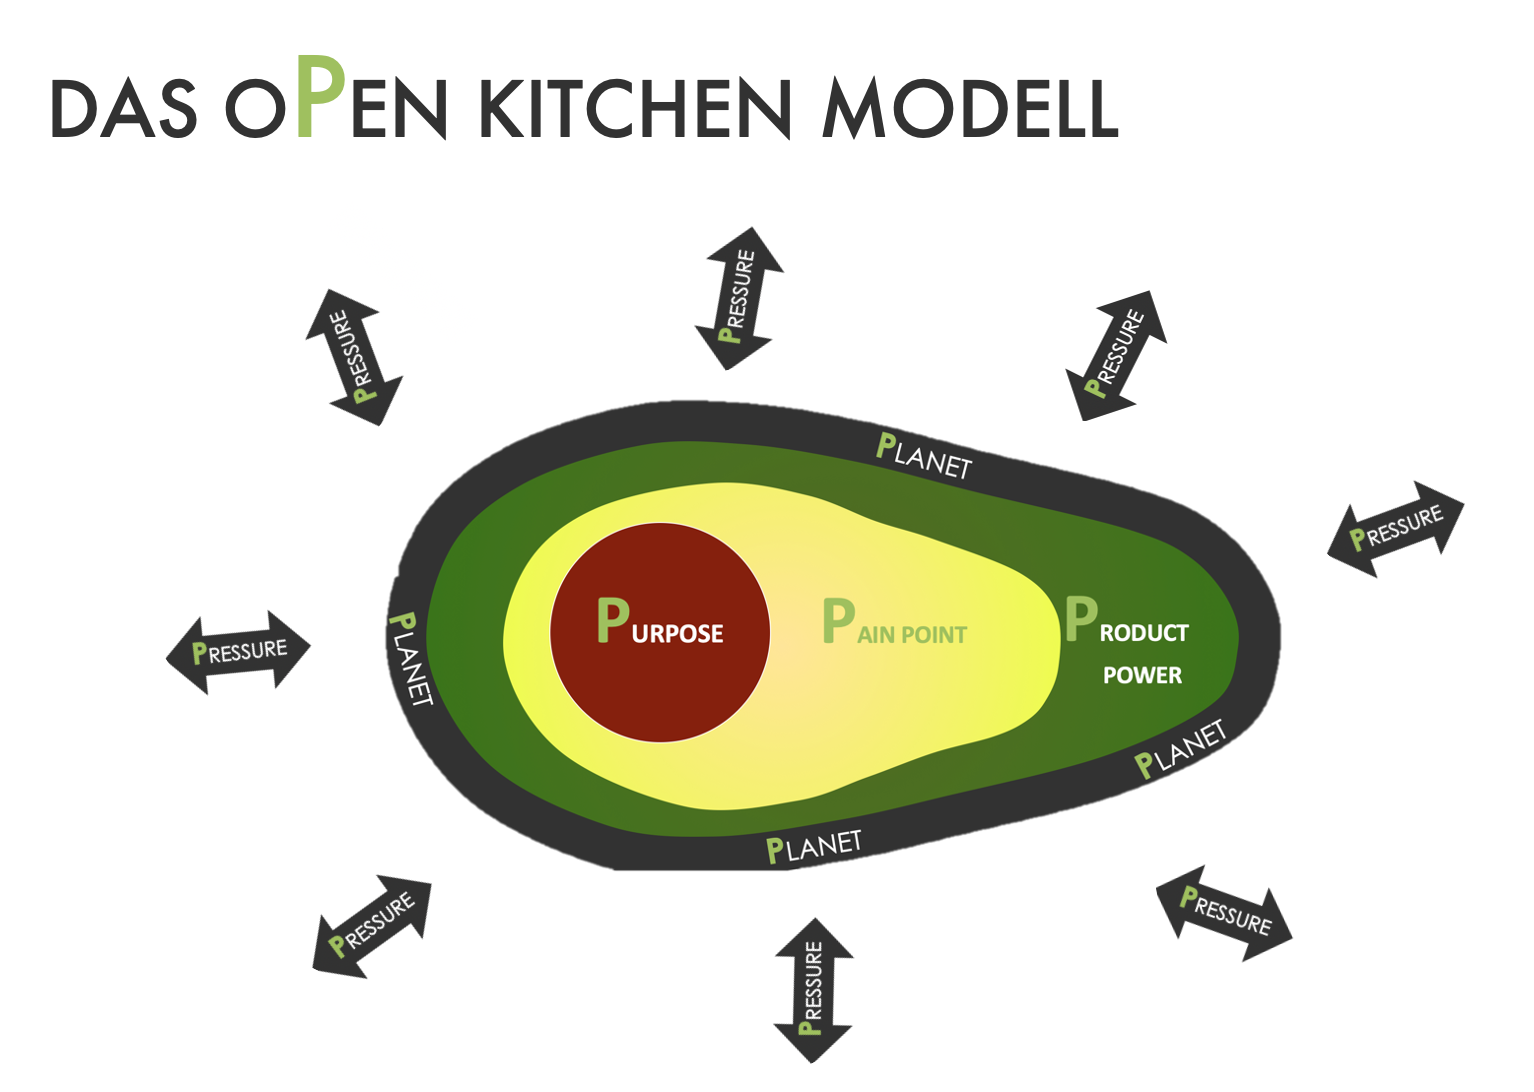 Pahnke Open Kitchen Positioning Modell 5P